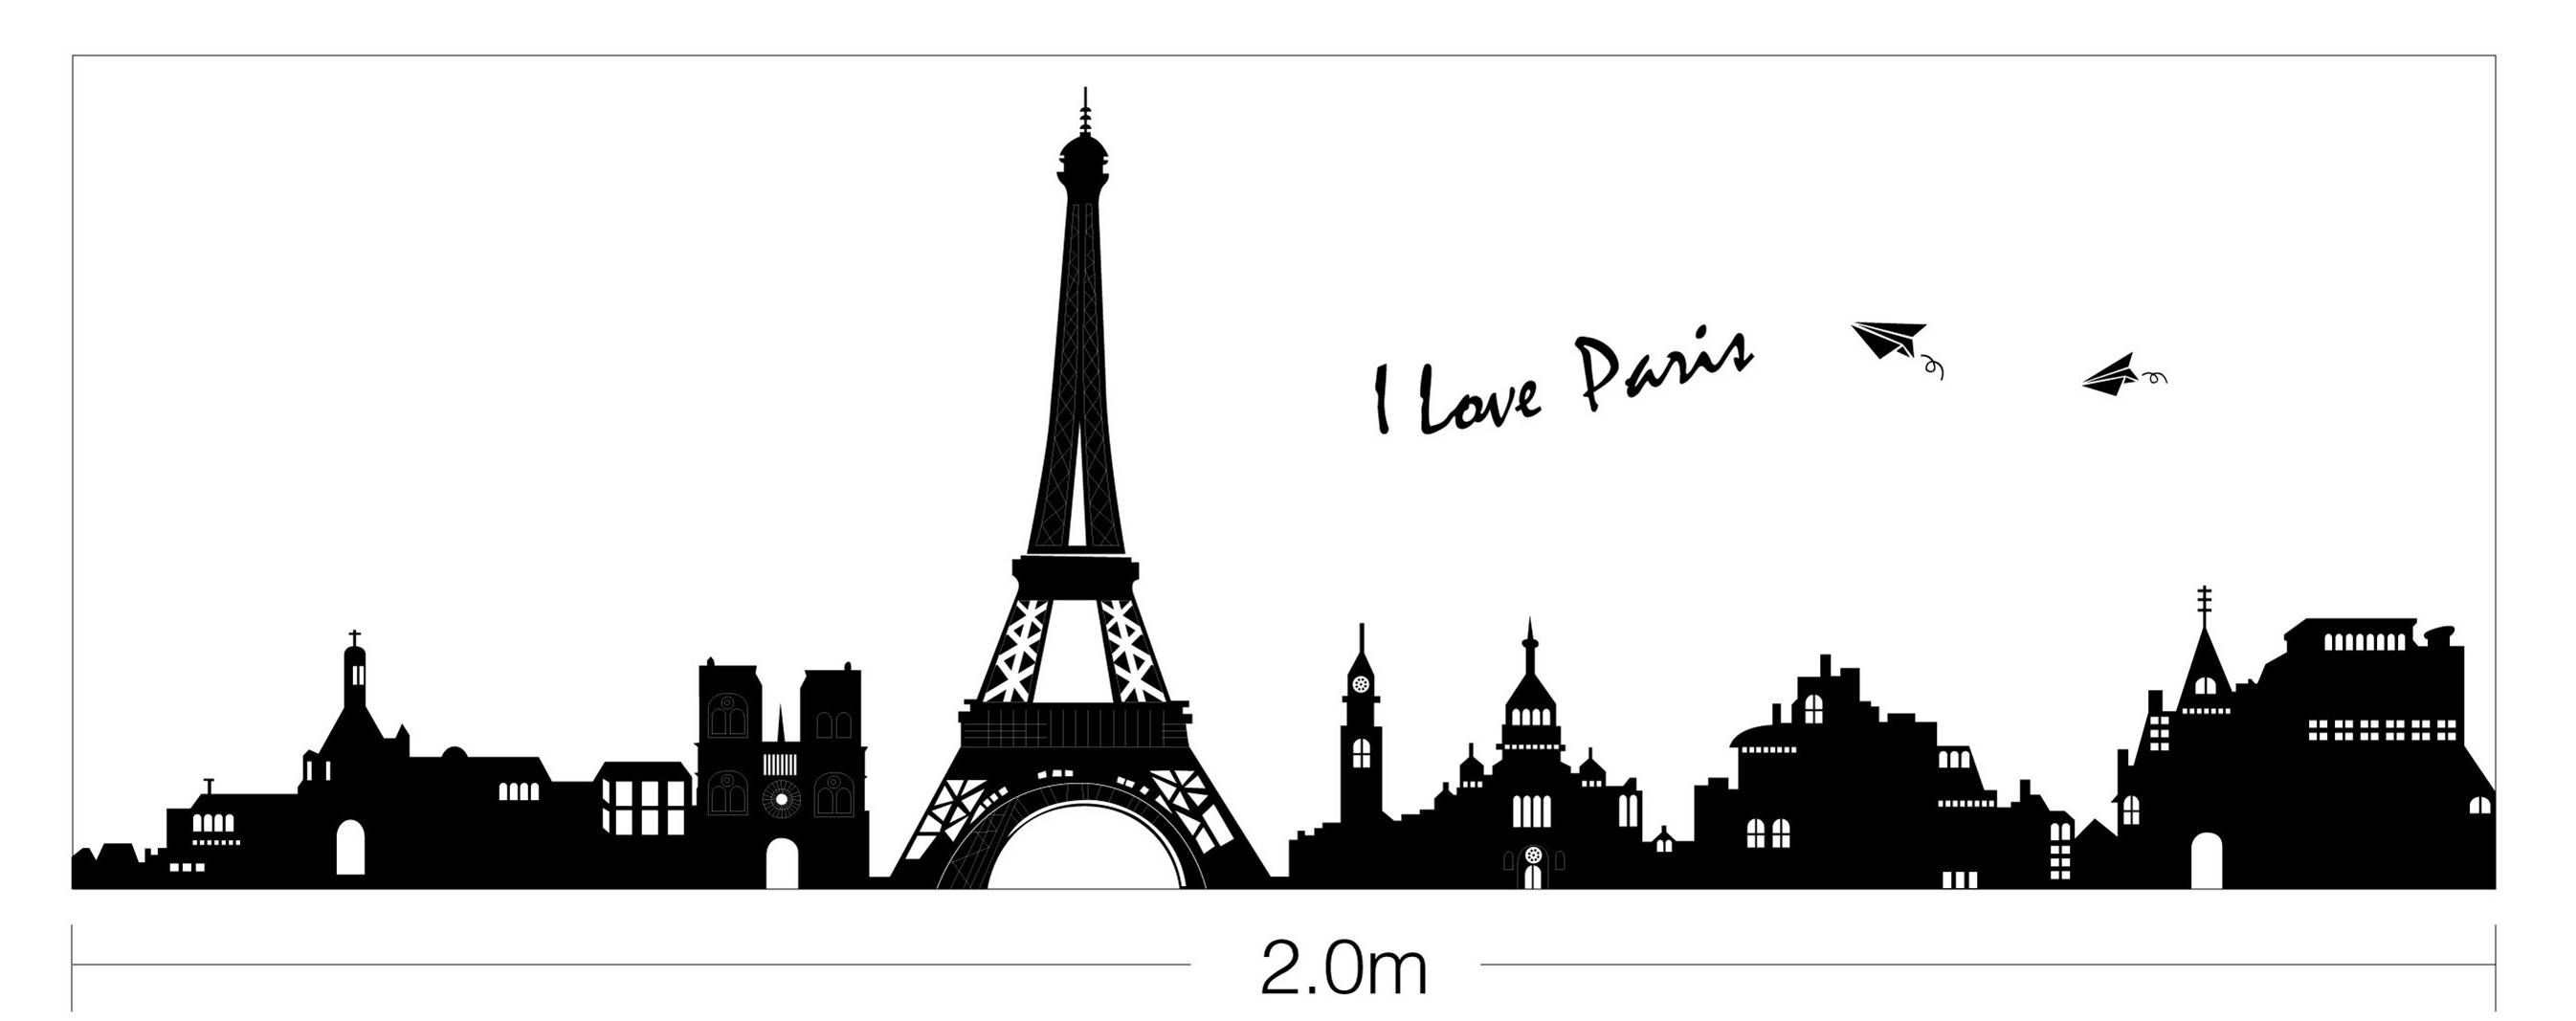 I Love Paris La Tour Eiffel Wall Stickers Removable Home Decal Art With Regard To Recent Paris Stickers (Gallery 9 of 15)